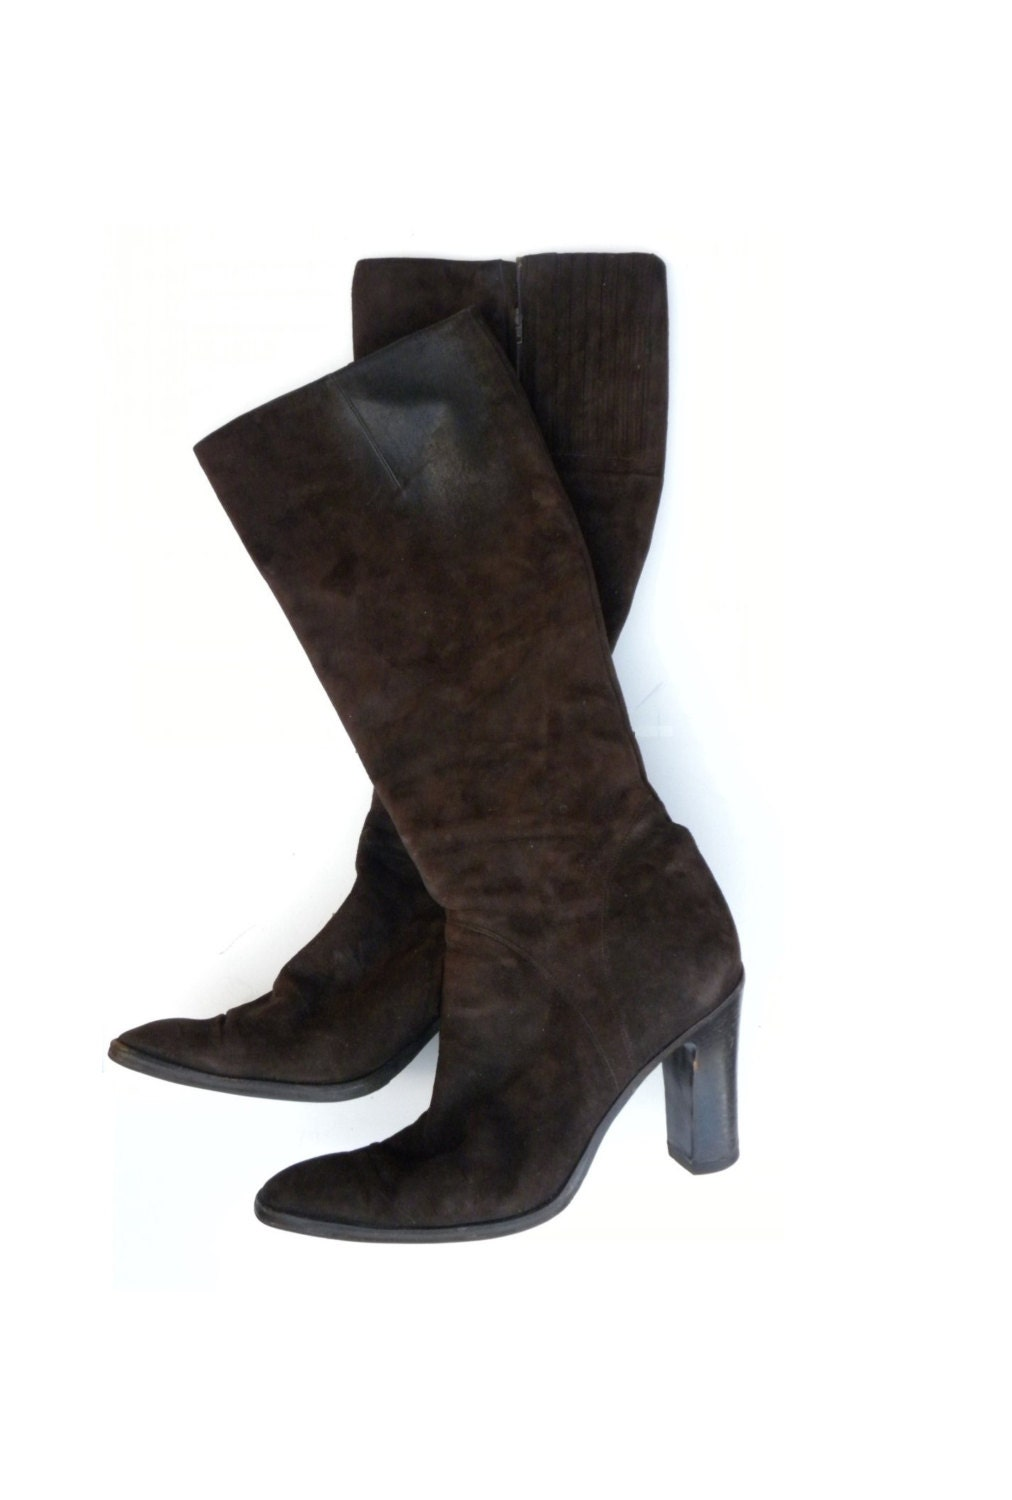 vintage womens dkny heeled boots brown suede boots size 9 mid